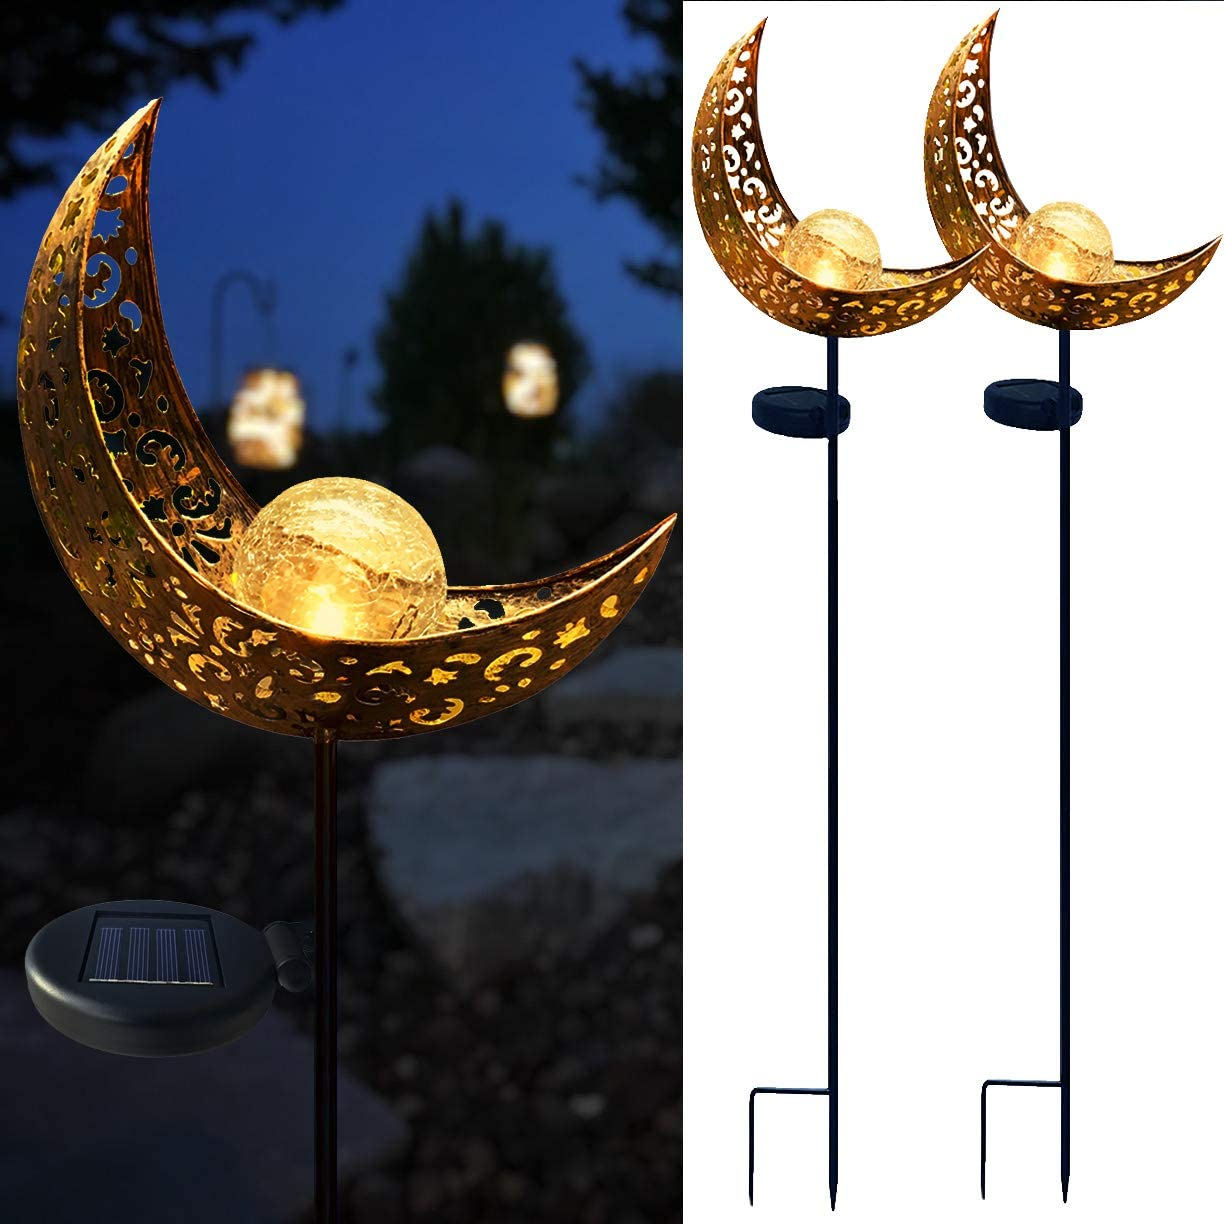 Solar Garden Stake Lights, Crackle Glass Globe with Hollowed-Out Metal Moon Molded,Solar Led Landscape Lights, Outdoor Waterproof Automatic On Off Solar Powered Yard, Patio,Deck,Lawn Lighting Decor